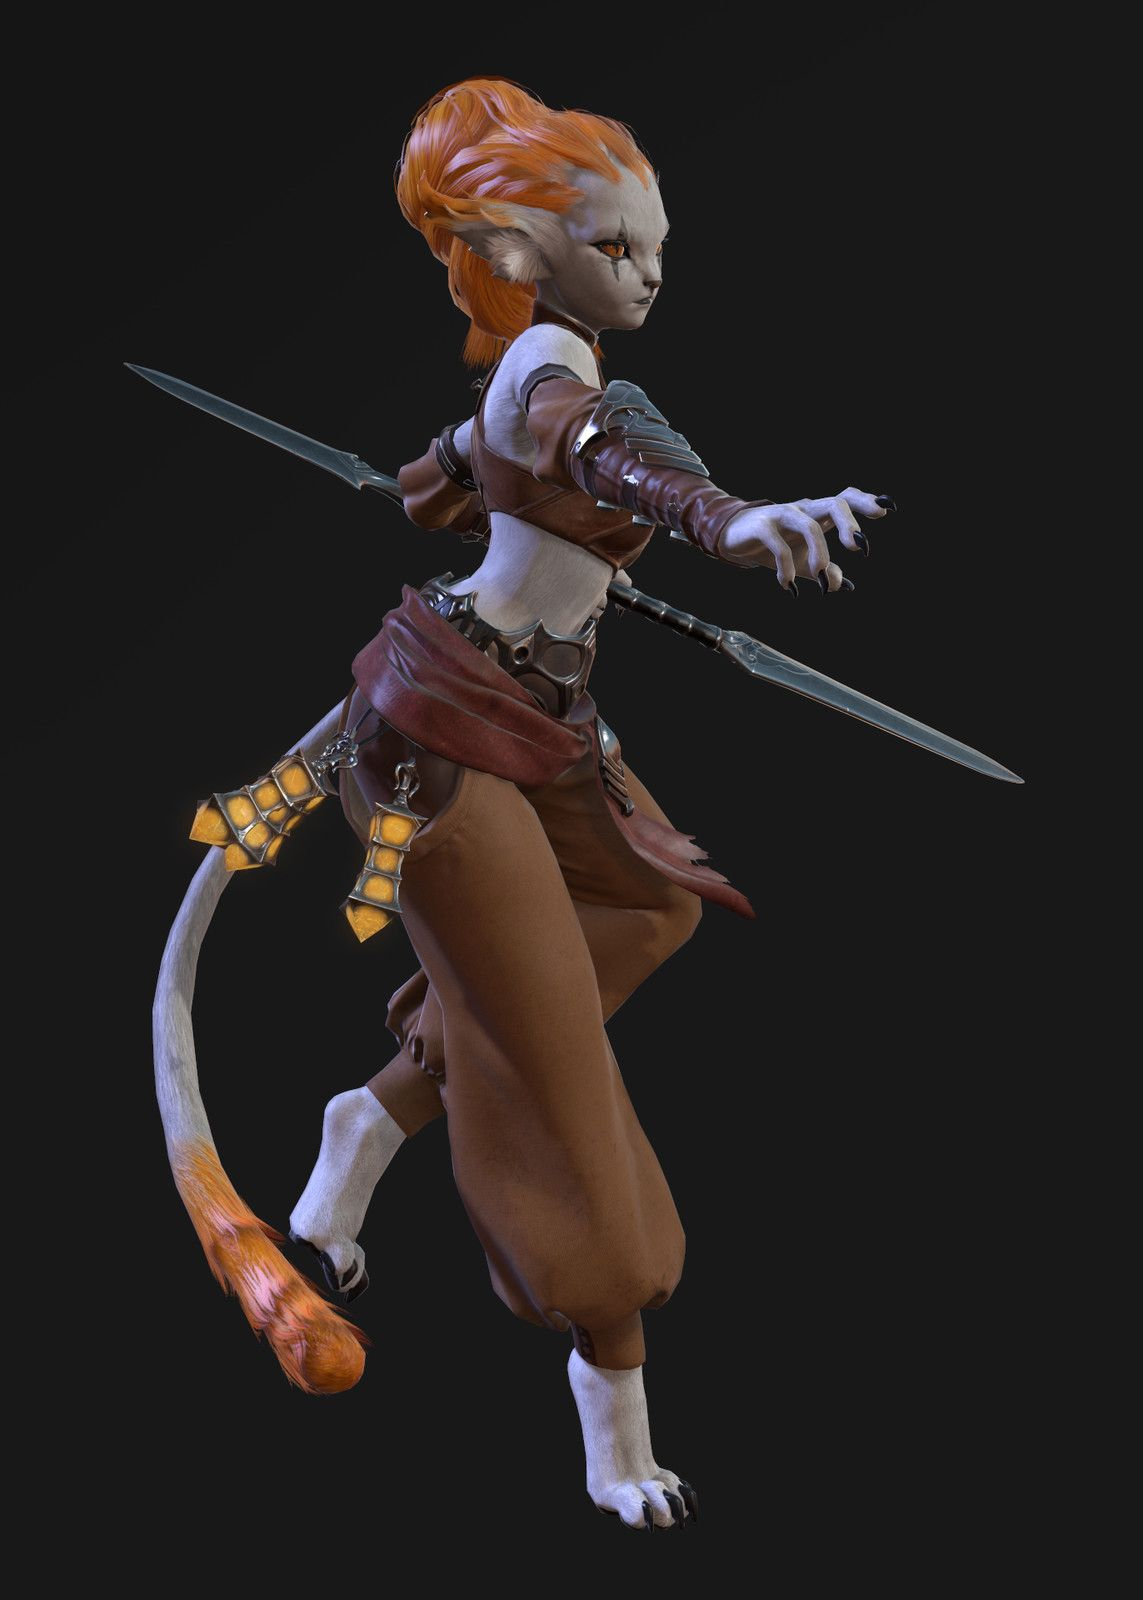 Pin by Priscilla Firstenberg on 3D Character design